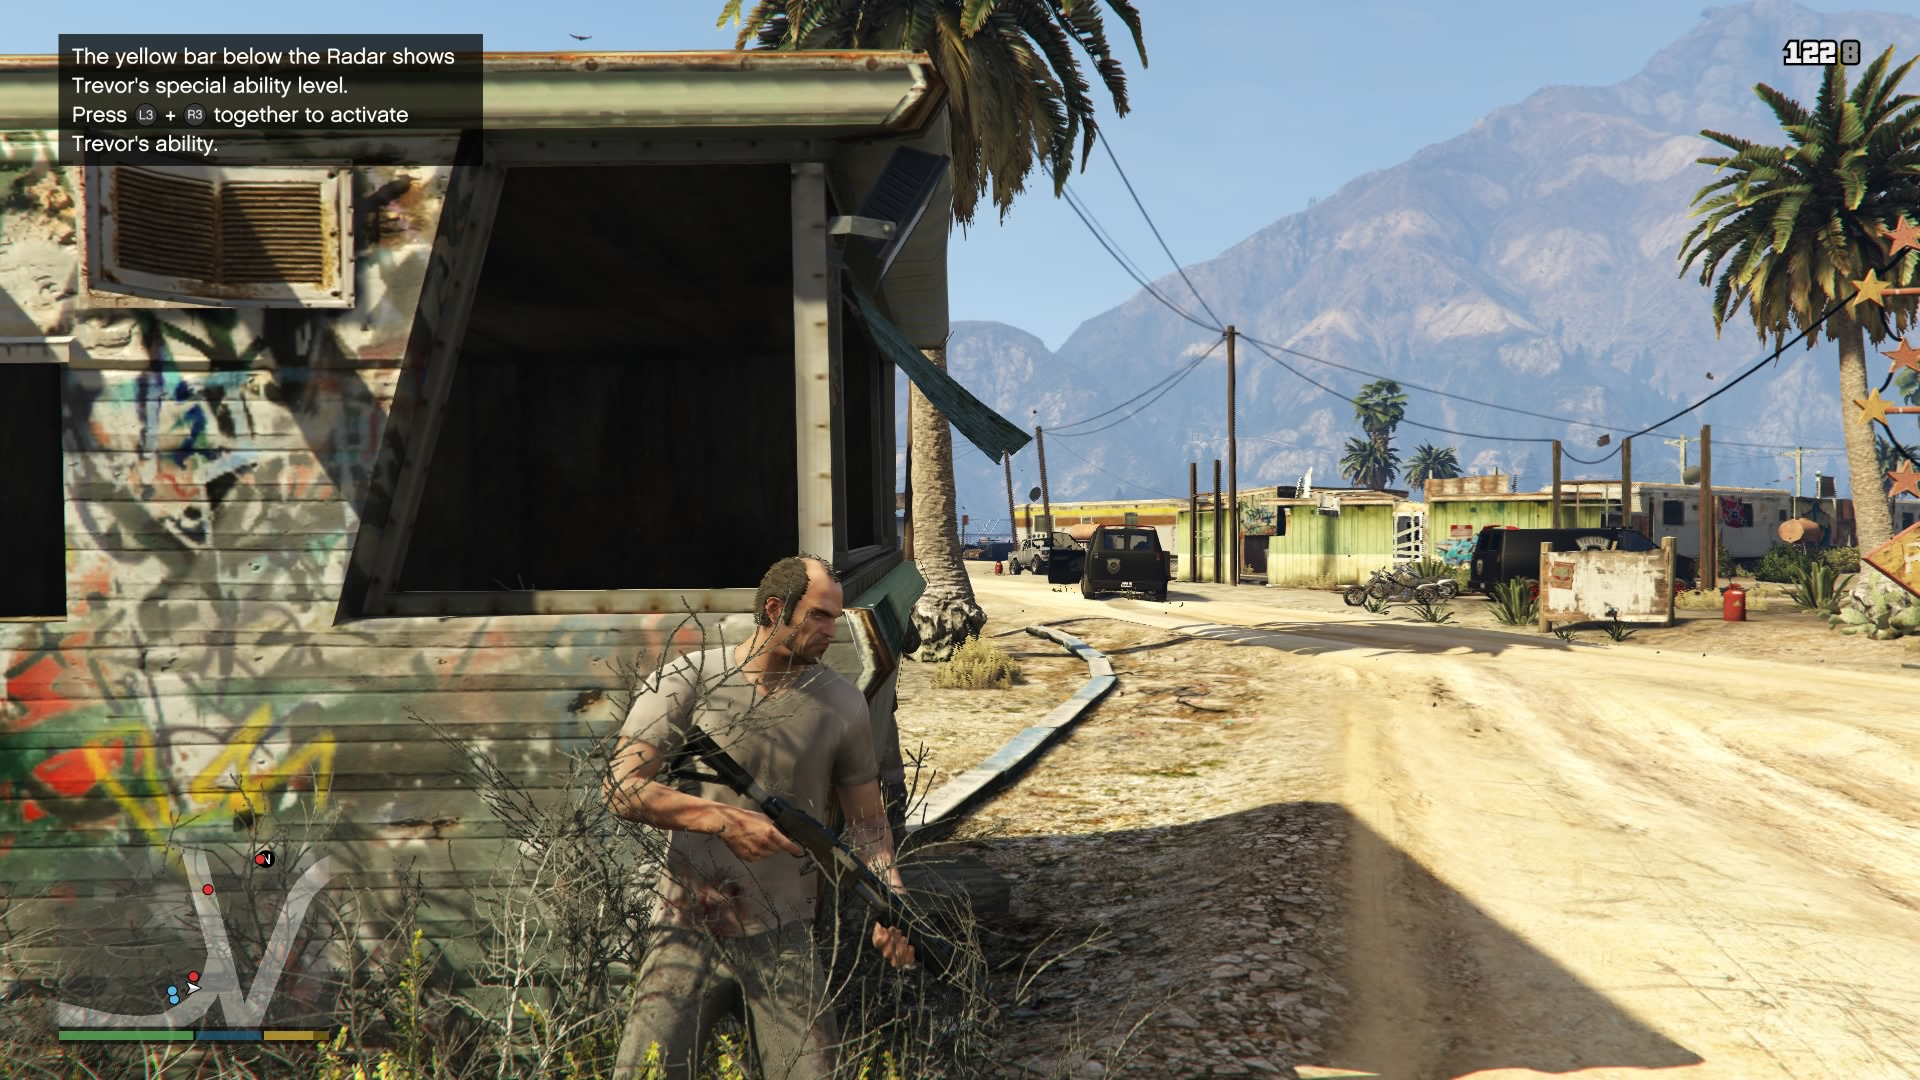 Grand Theft Auto 5 Car Wallpaper Grand Theft Auto V Ps4 Review The Trevor S In The Details